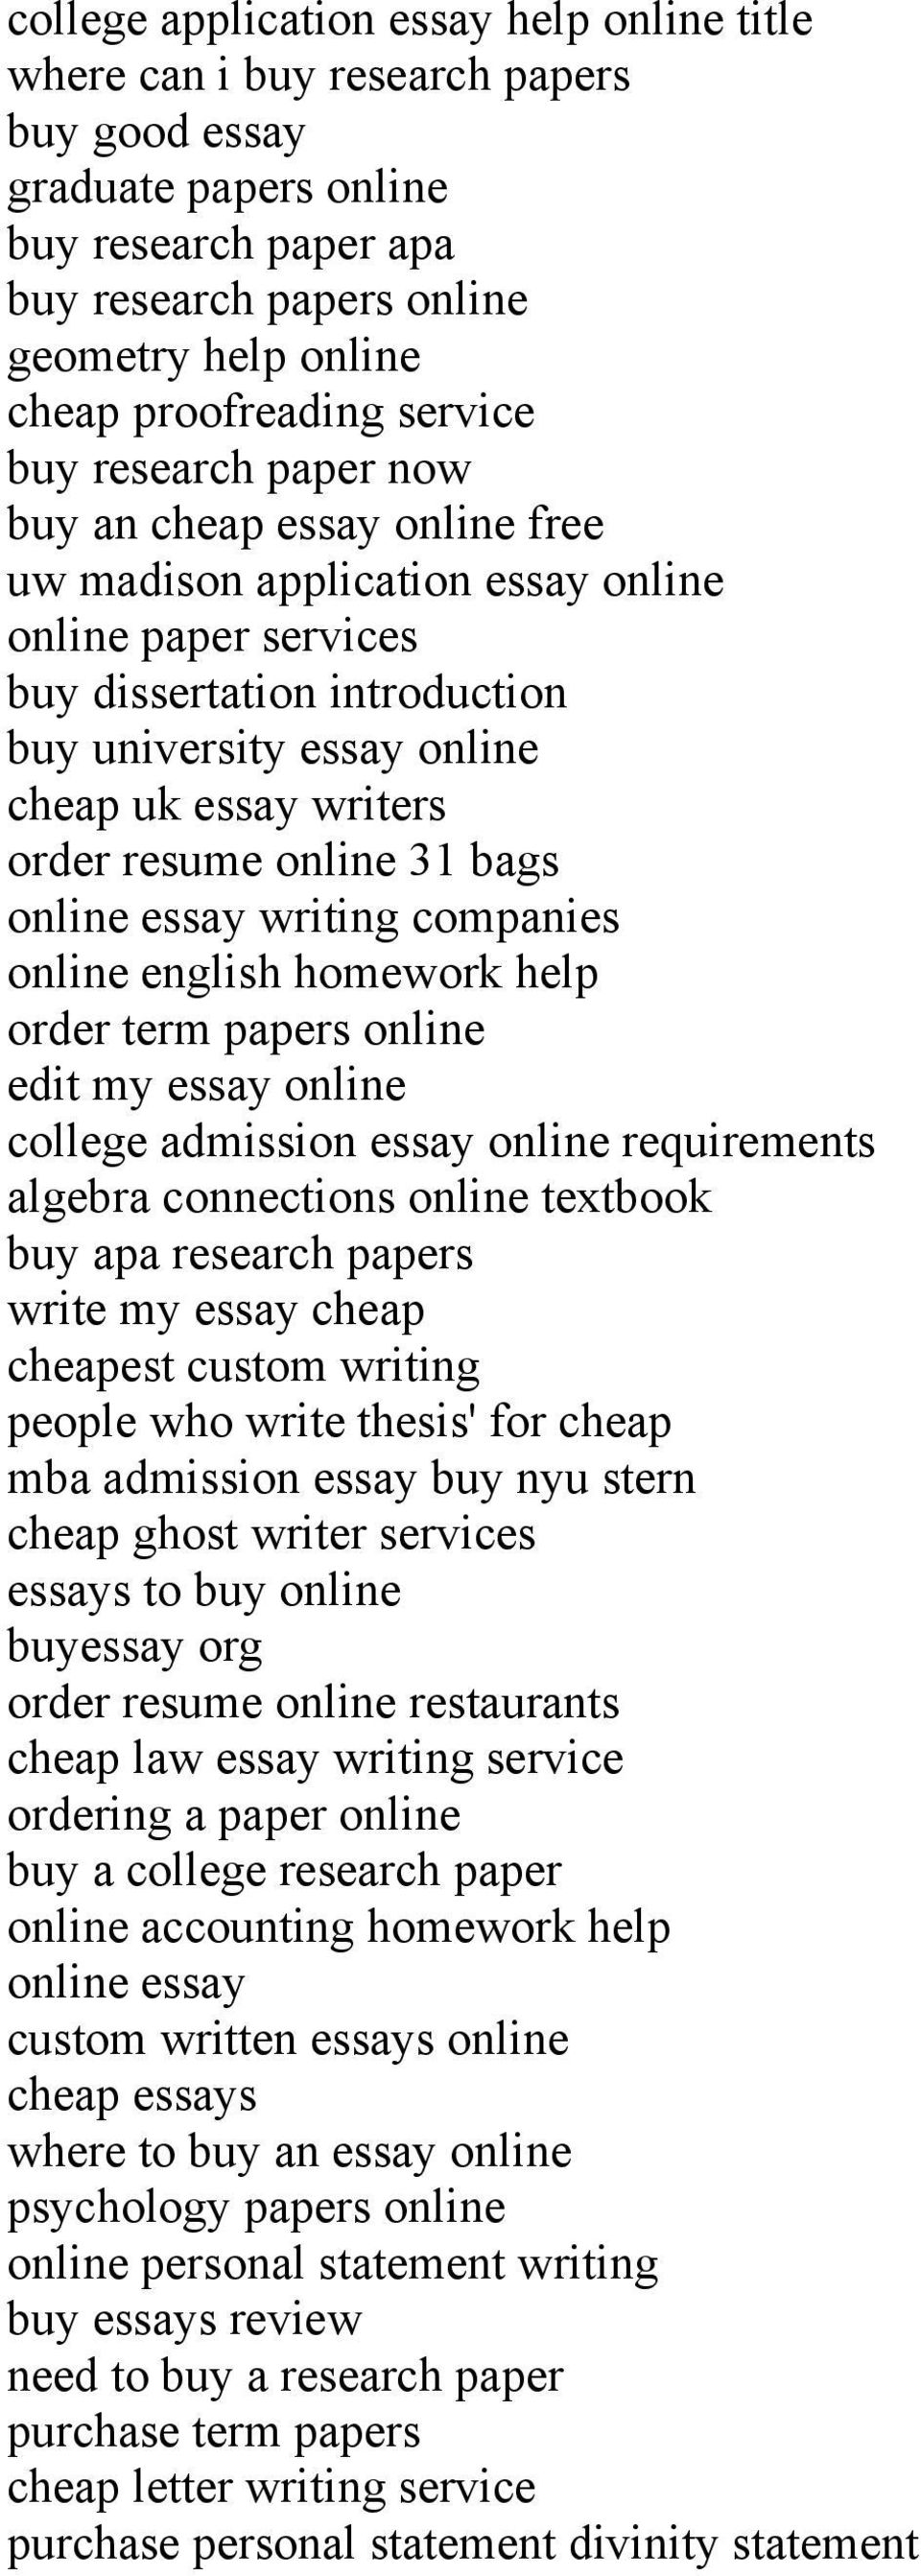 essay writers order resume online 31 bags online essay writing companies online english homework help order term papers online edit my essay online college admission essay online requirements algebra